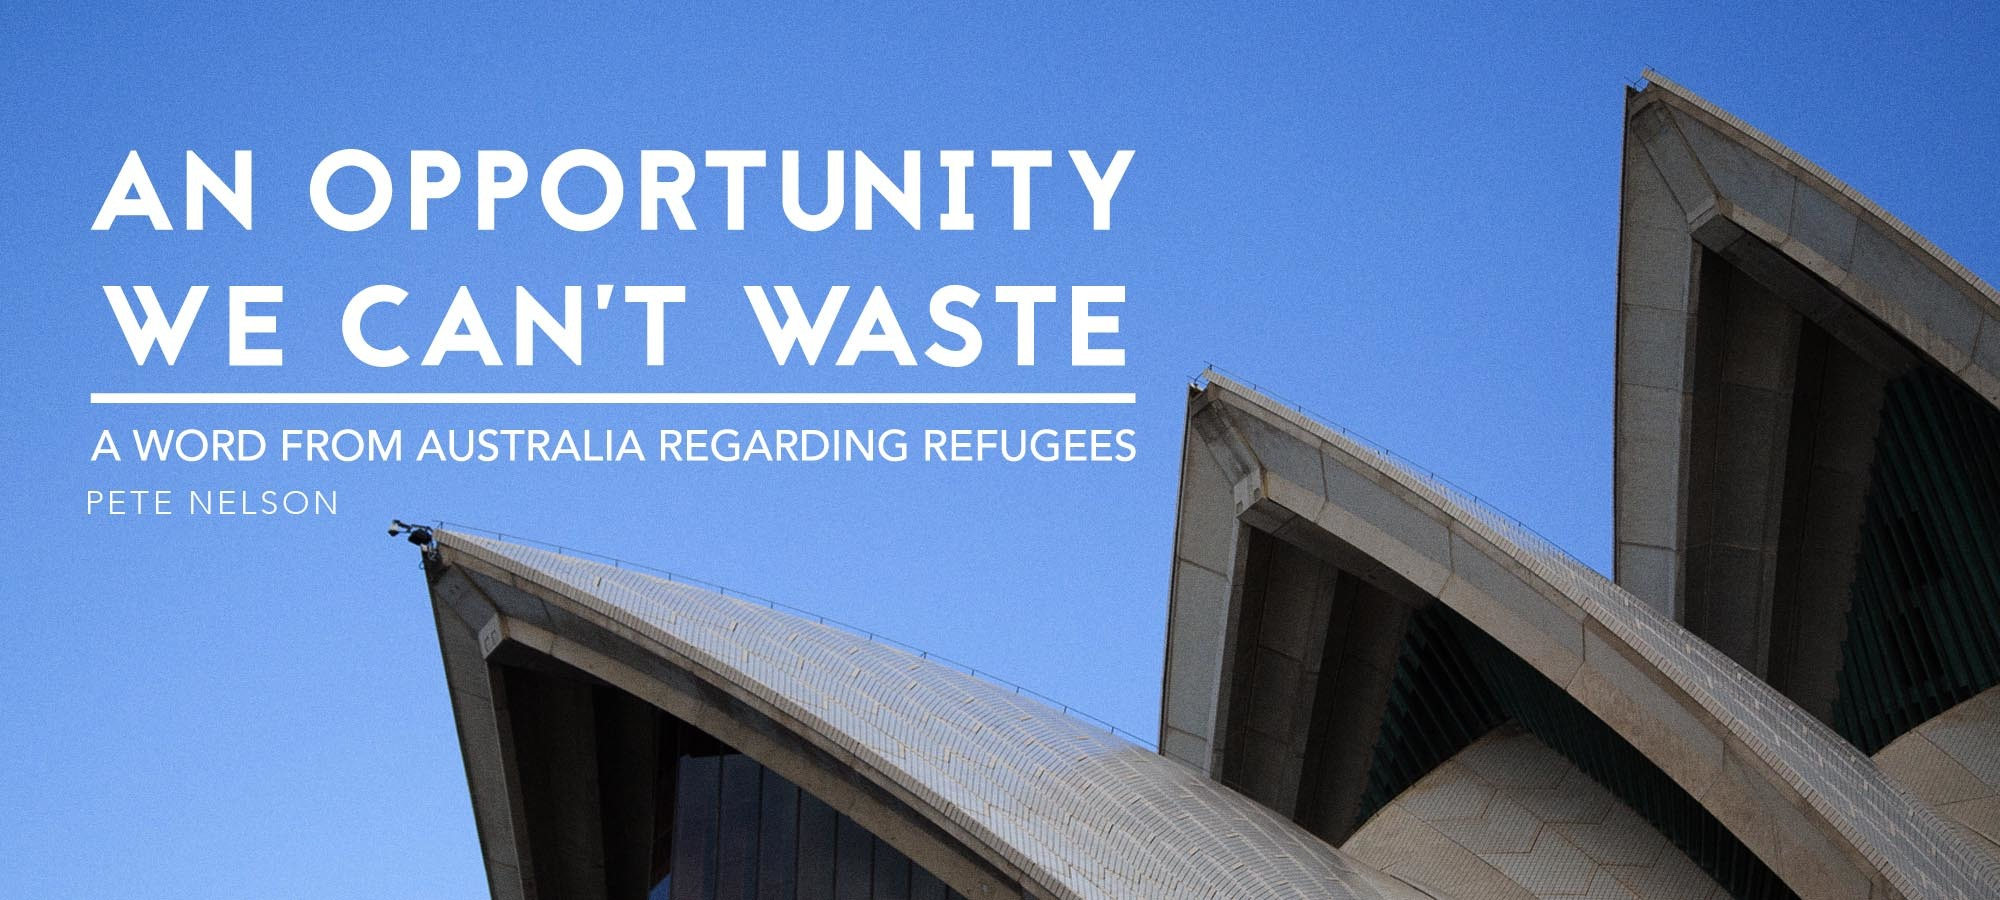 An Opportunity We Can't Waste: A Word from Australia Regarding Refugees